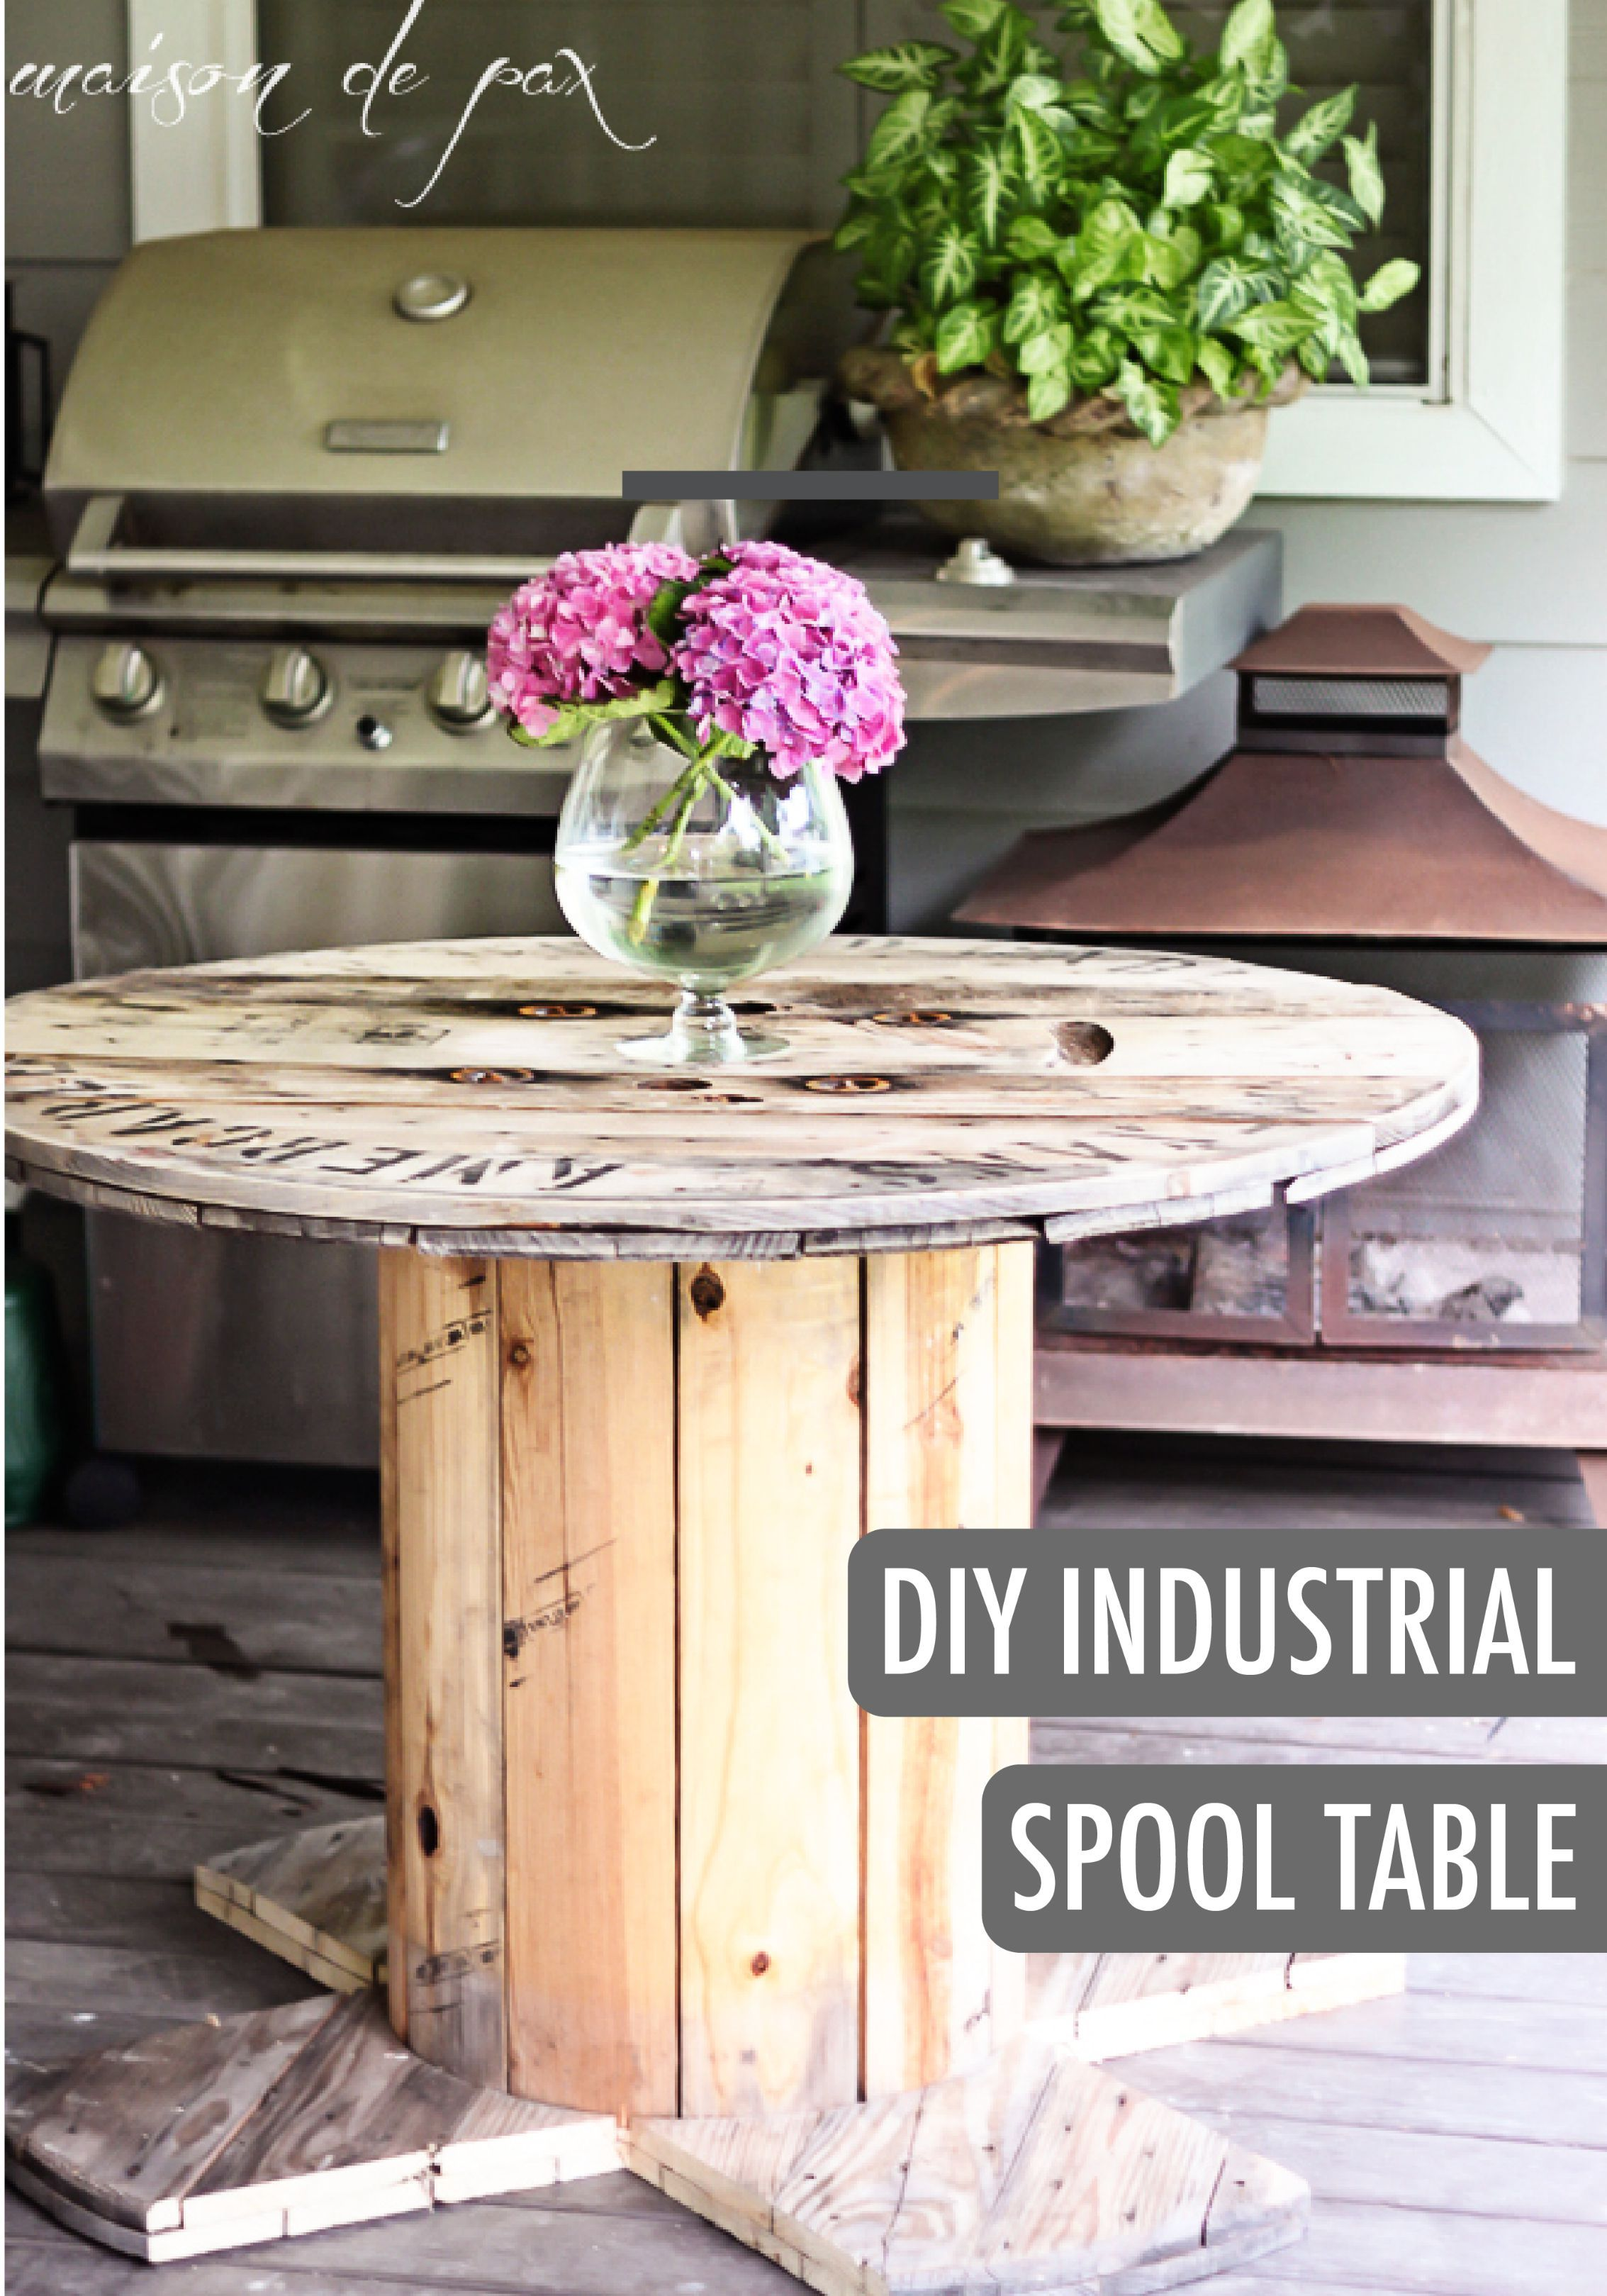 exciting cable spool kitchen table | DIY Industrial Spool Table | Spool tables, Diy table, Wire ...